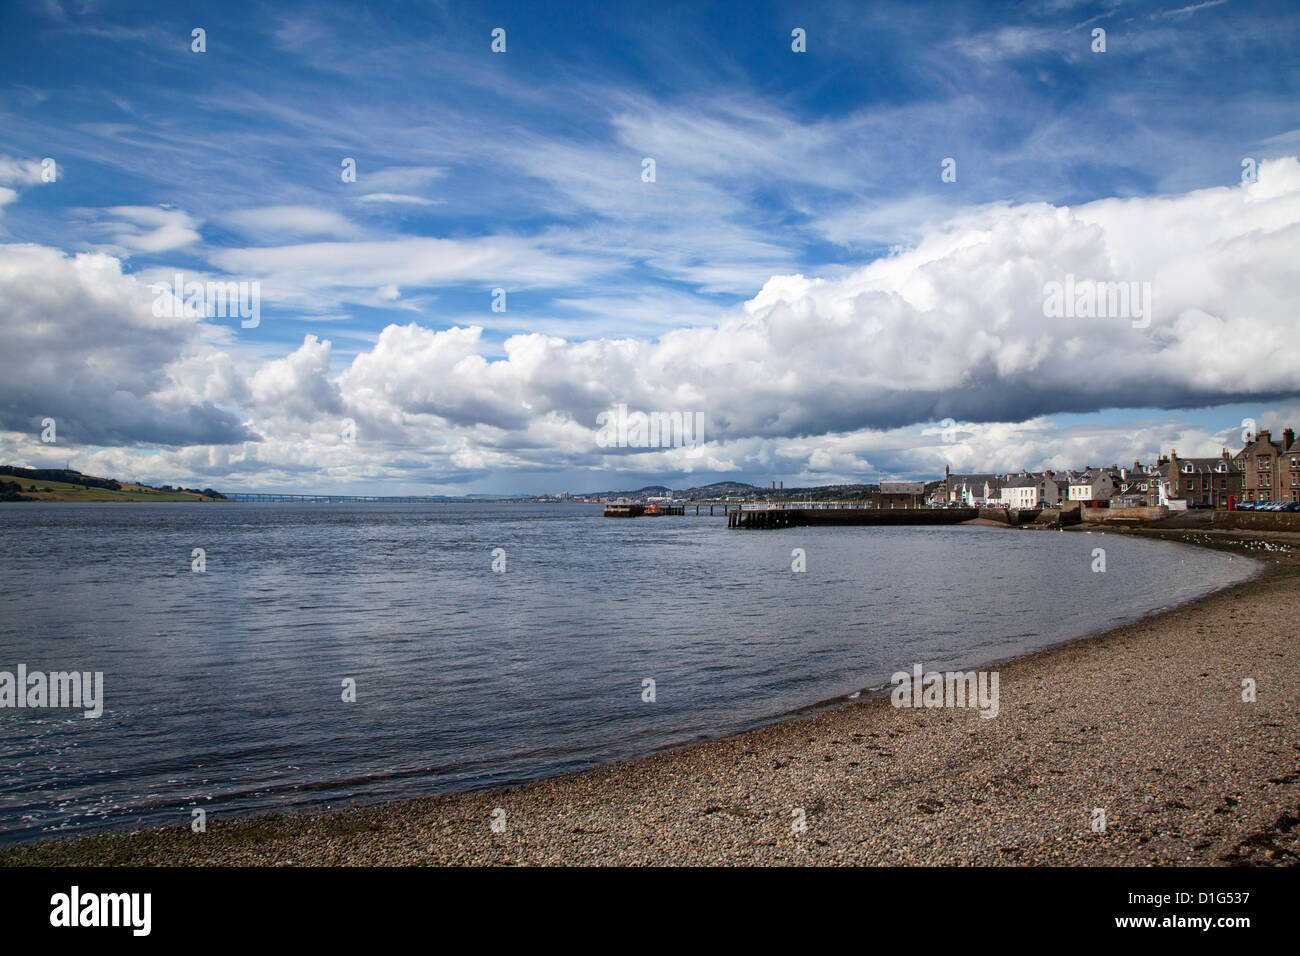 Clearing storm at Broughty Ferry, Dundee, Scotland, United Kingdom, Europe - Stock Image